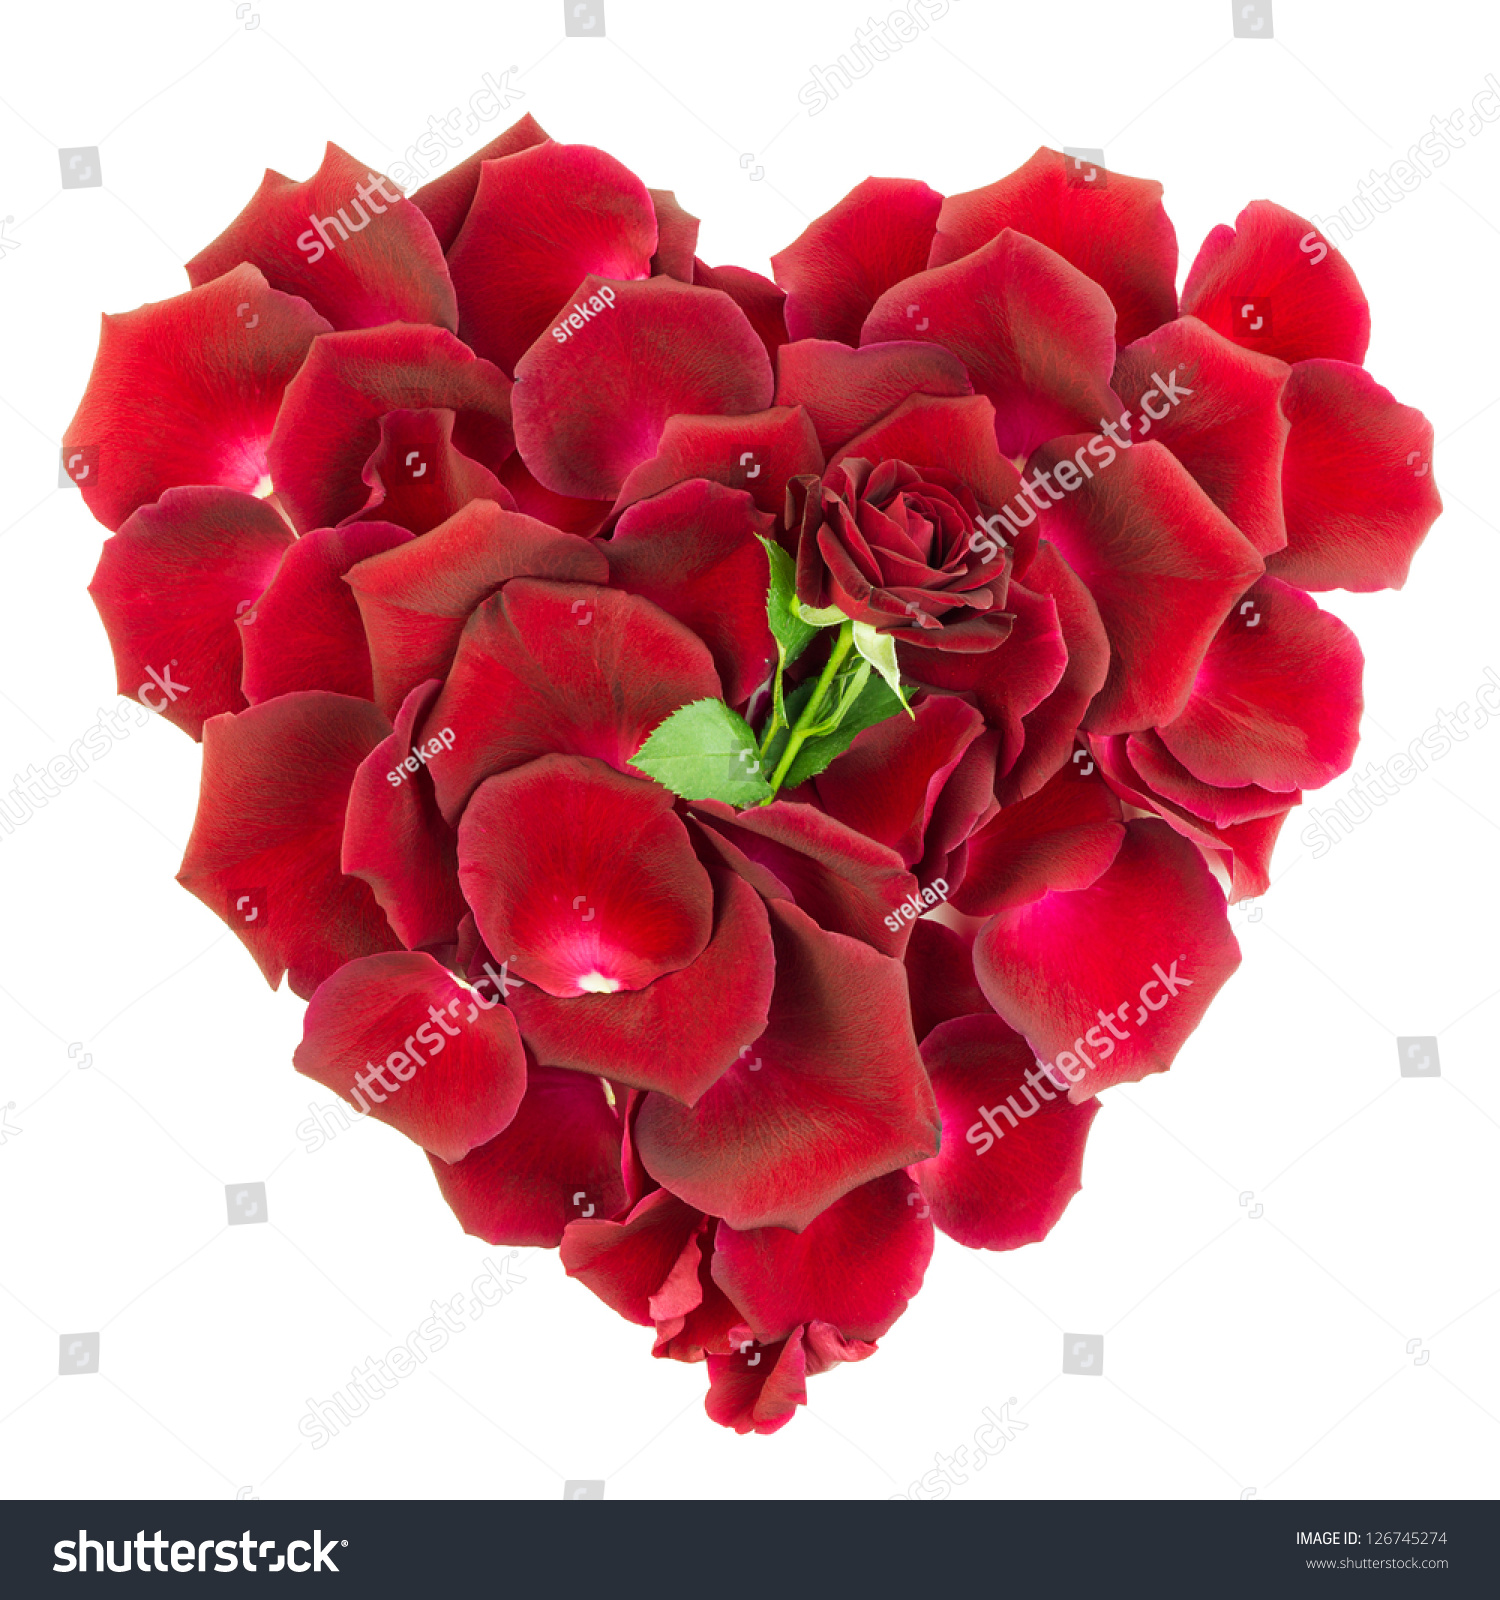 Love heart of red rose petals with single rose head stock for Individual rose petals